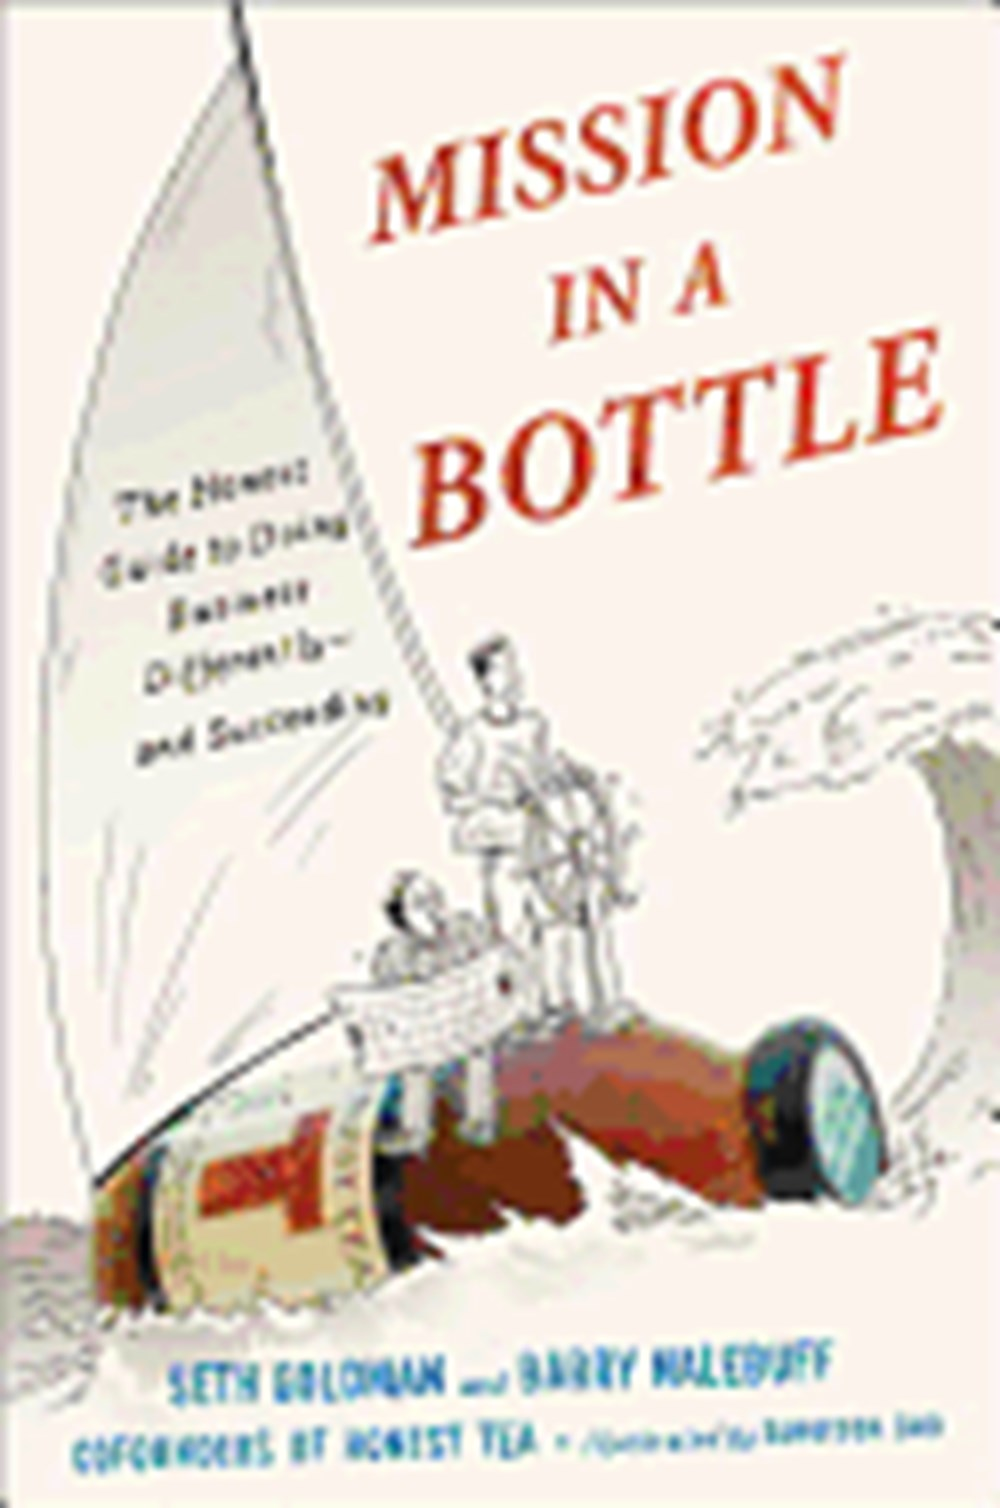 Mission in a Bottle The Honest Guide to Doing Business Differently - And Succeeding